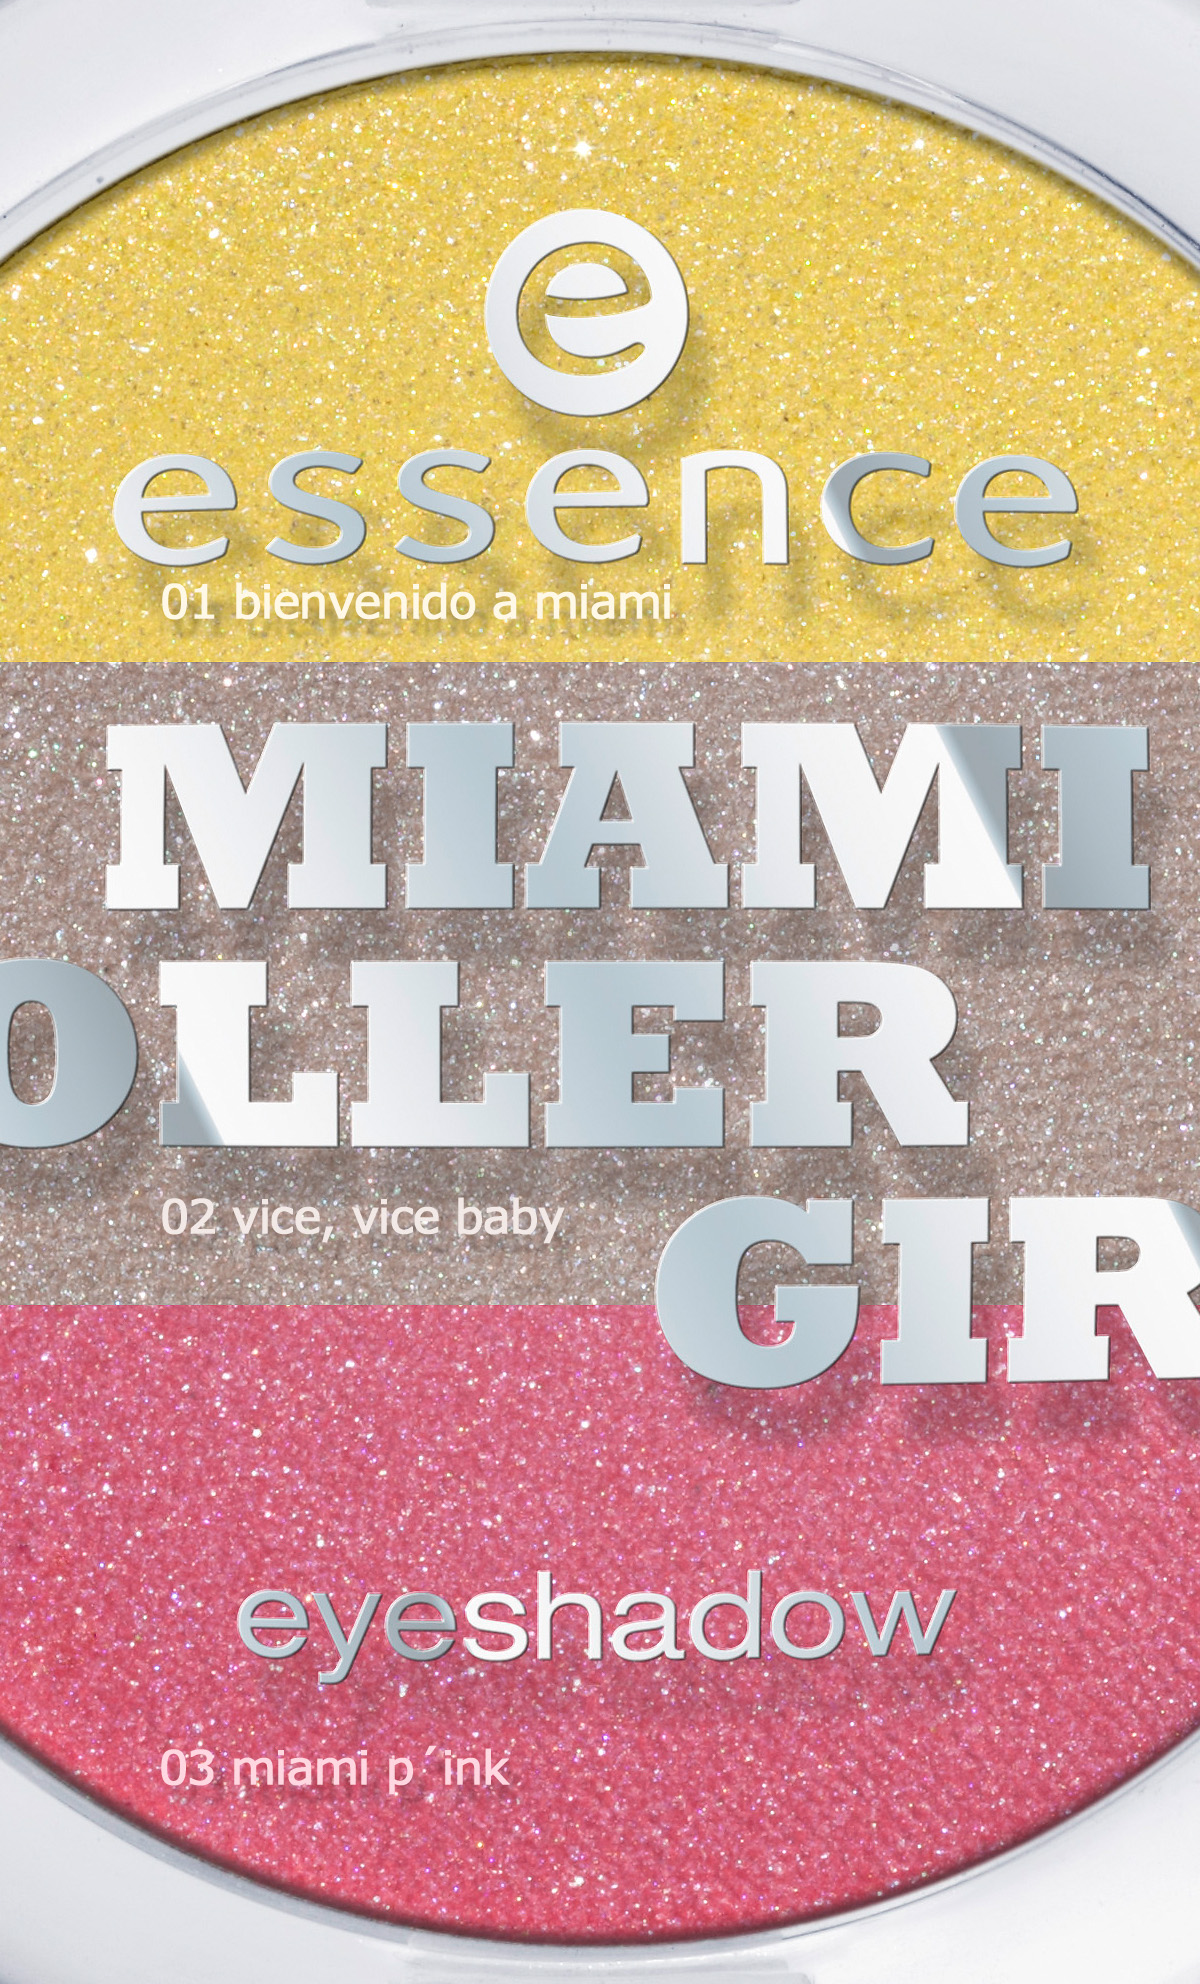 "essence ""miami roller girl eyeshadows"" in den Farben 01 bienvenido a miami, 02 vice, vice baby und 03 miami p´ink. Um 1,59 €*"